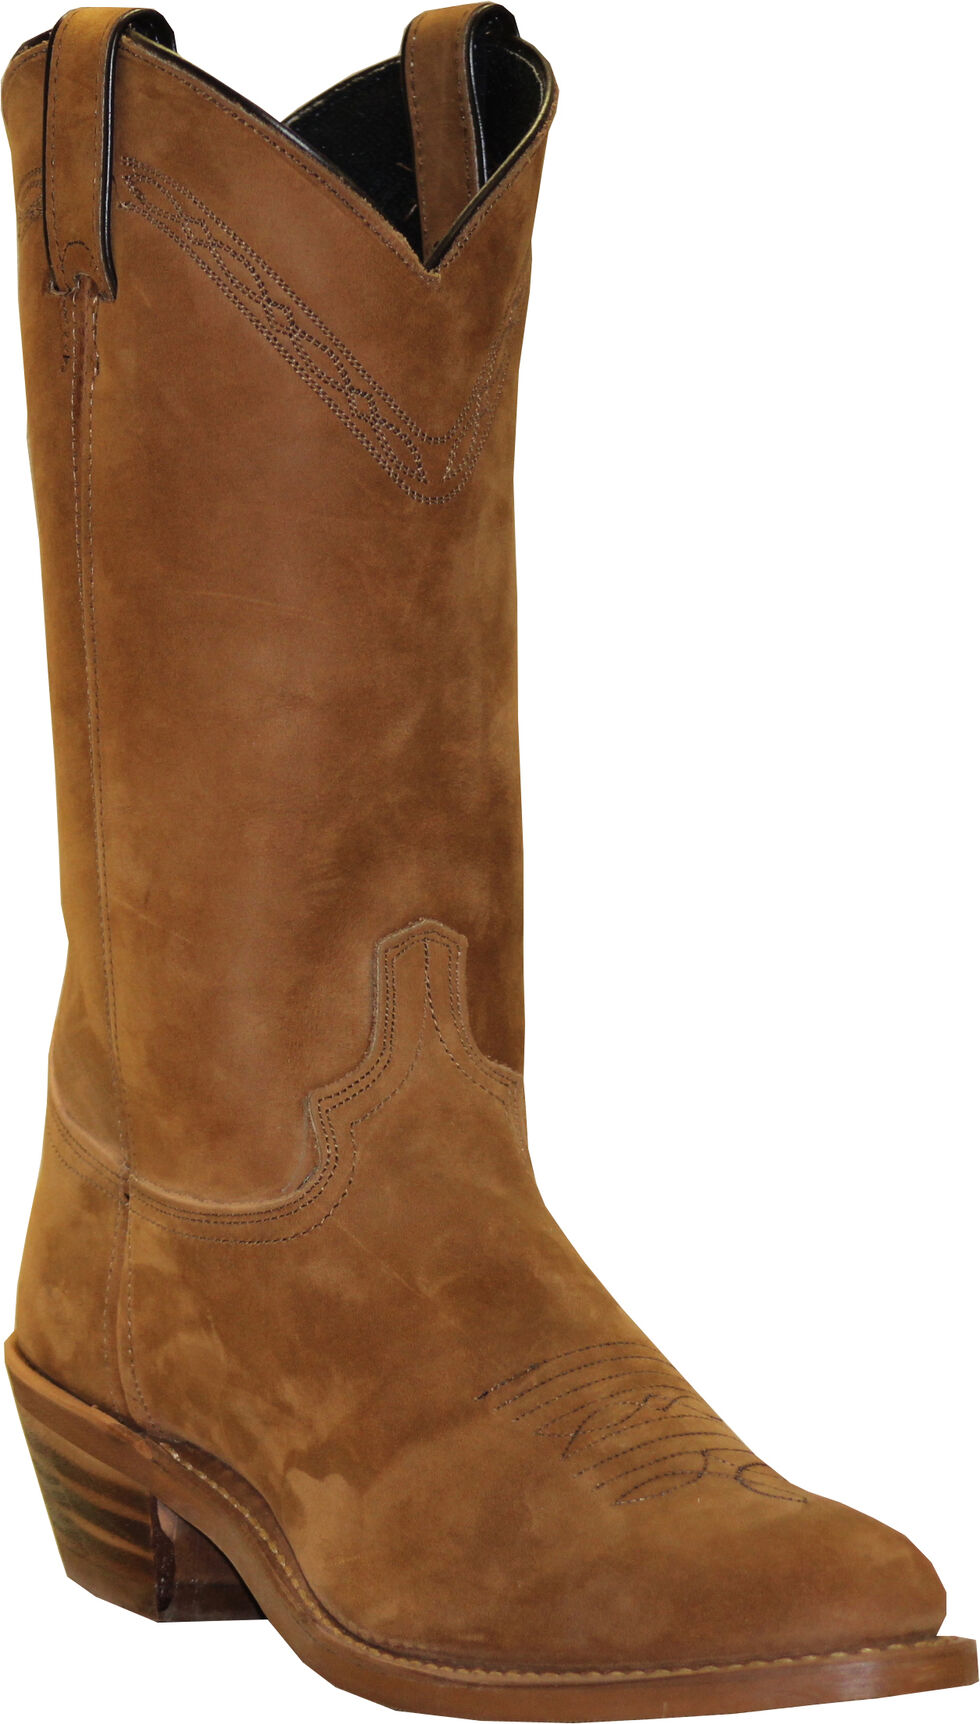 Abilene Men's Pull-On Western Boots - Square Toe, Dirty Brn, hi-res